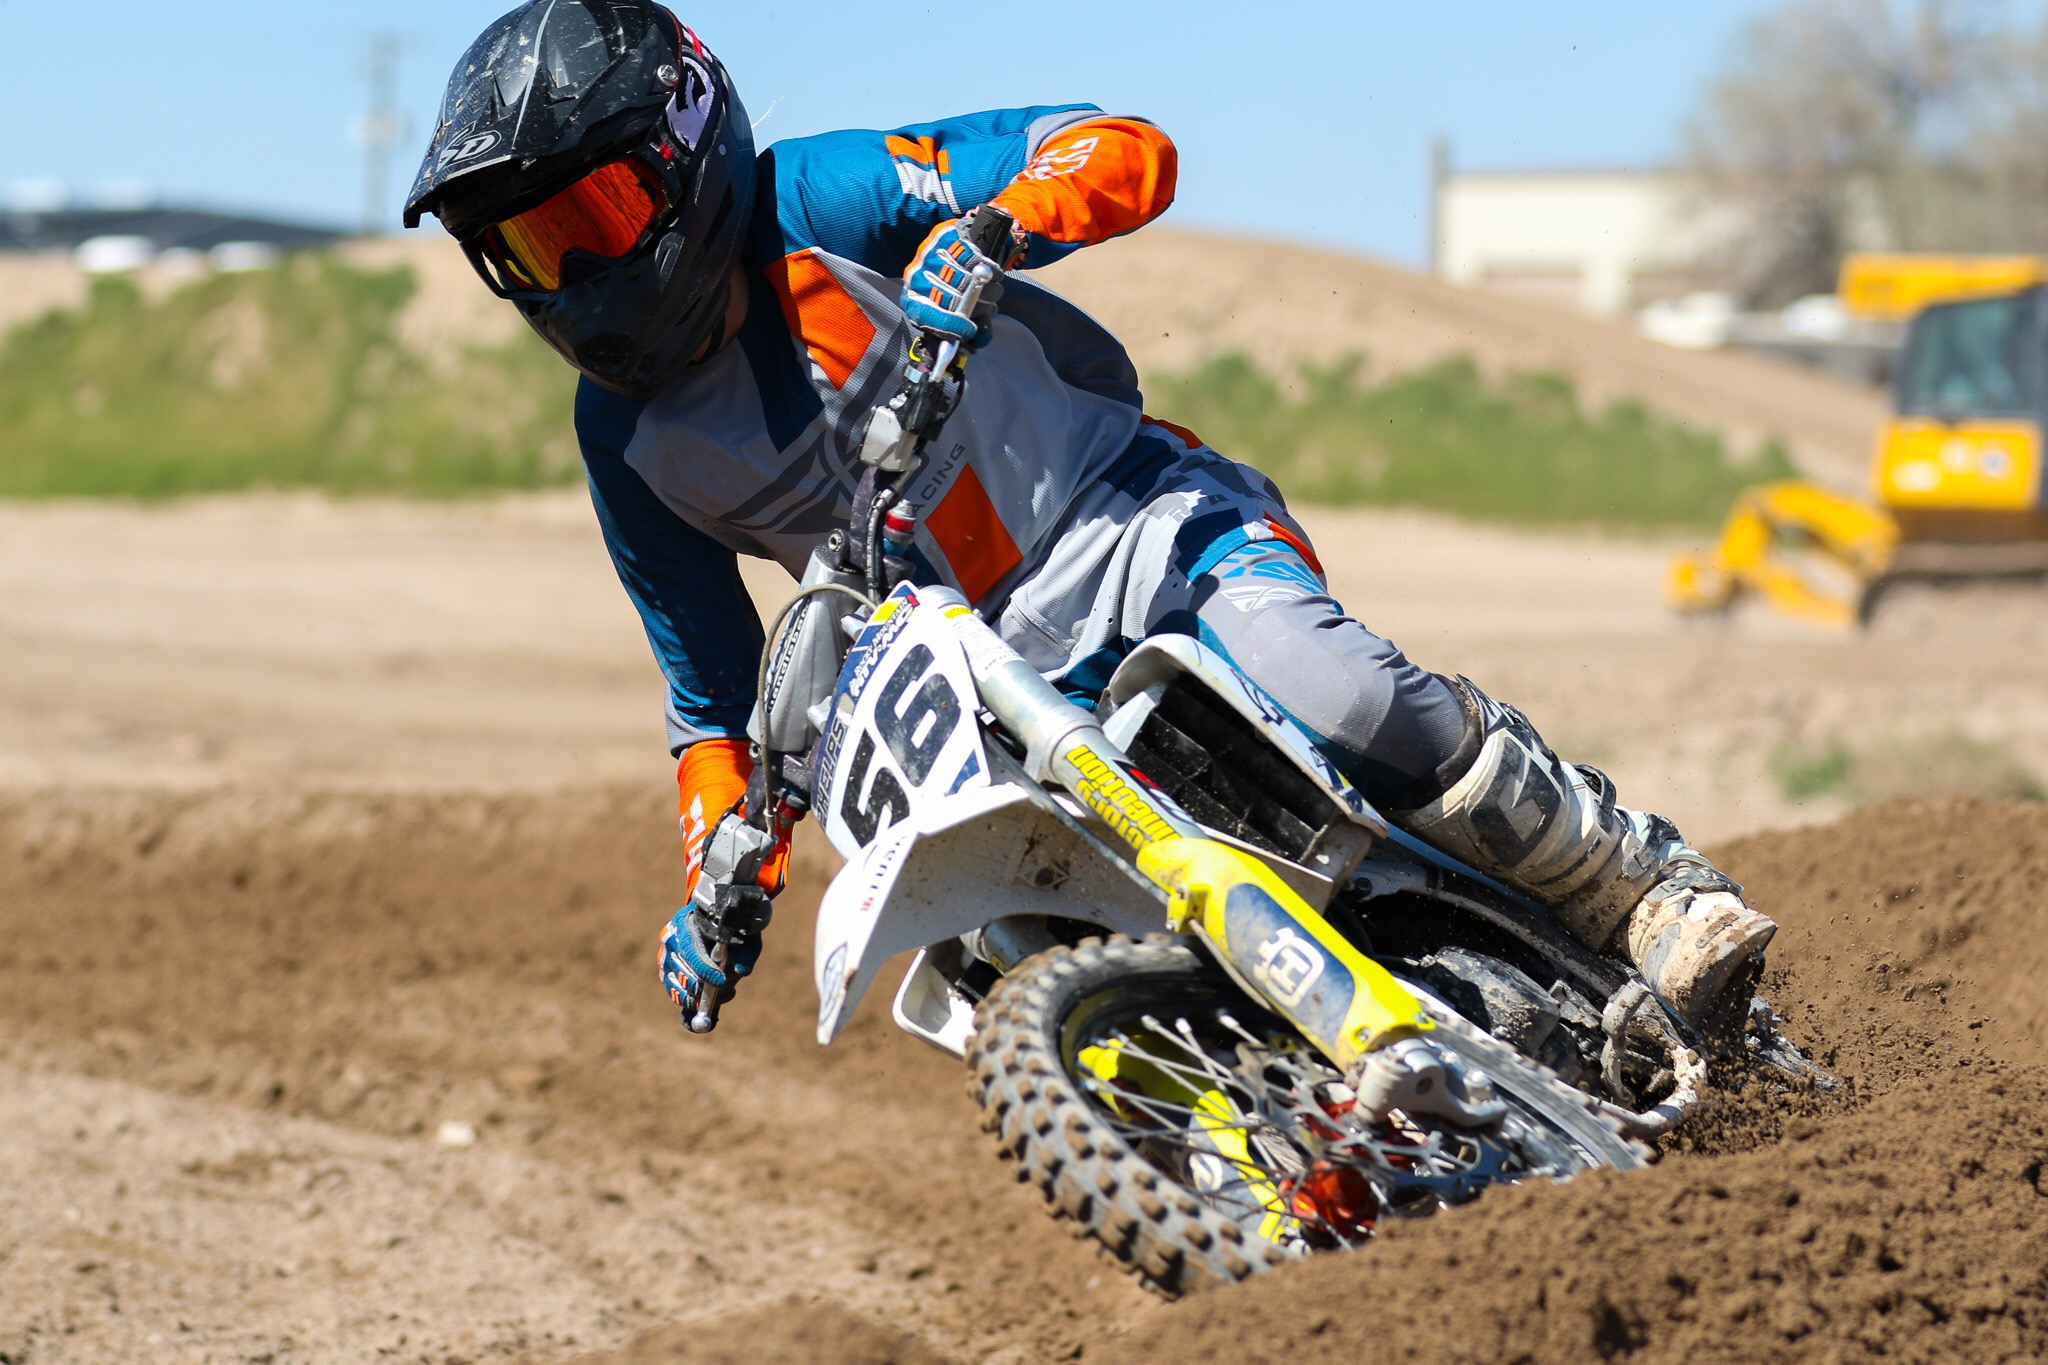 From 9 To 19 Years Old 6 Local Motocross Riders Preparing To Compete At Nationals In Tennessee St George News